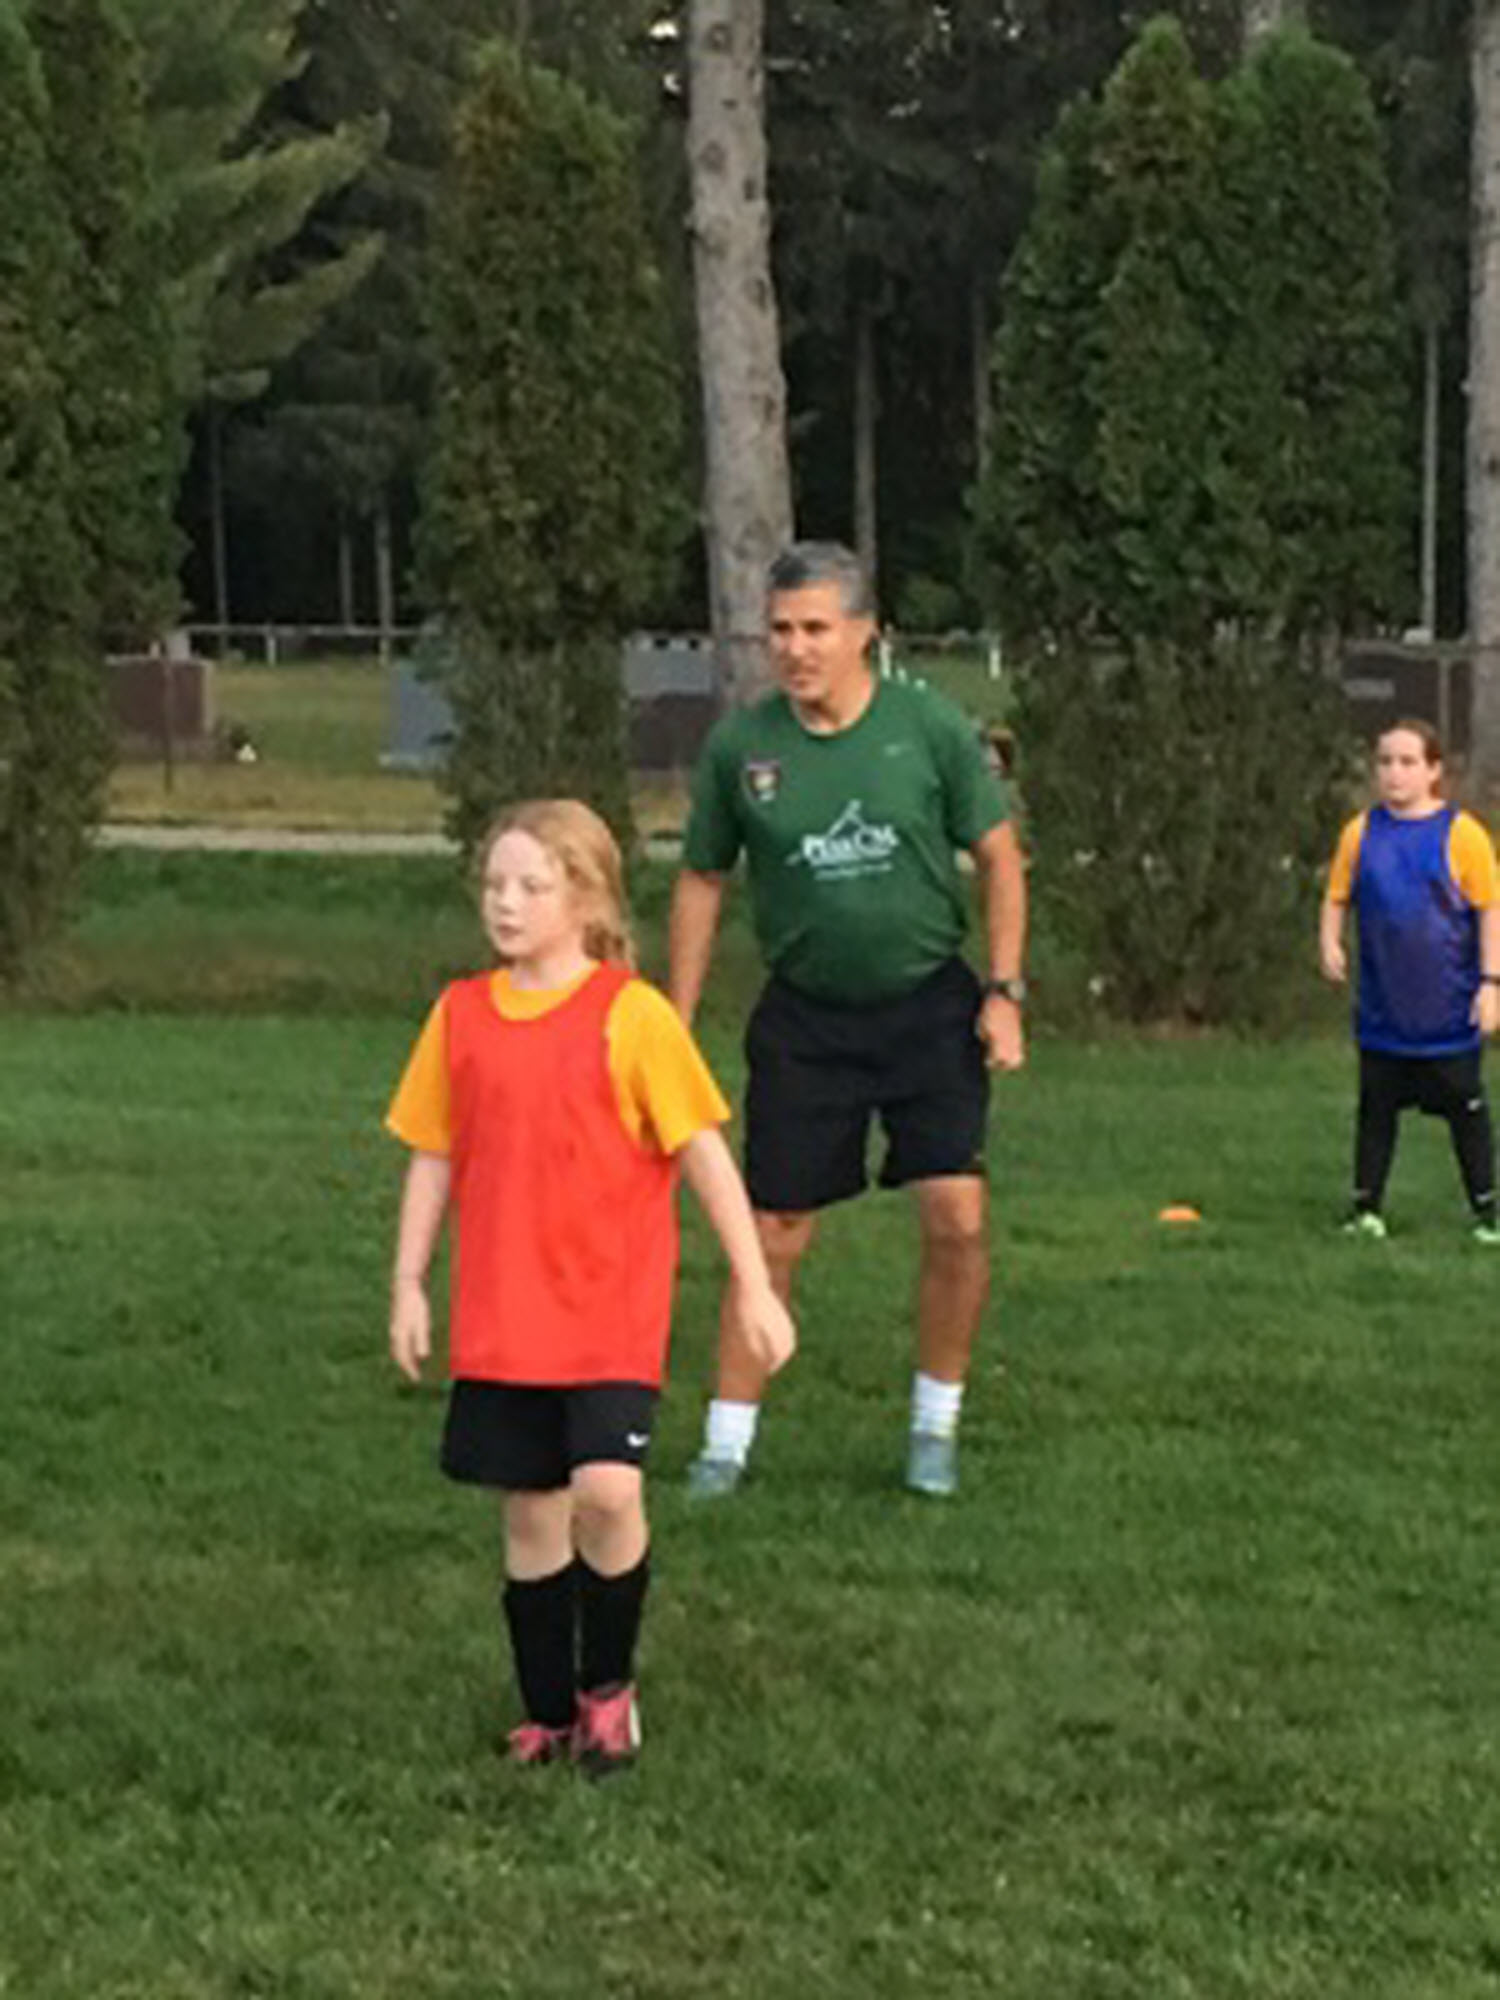 NEW-Winter Soccer Training Skills Program, Session 3